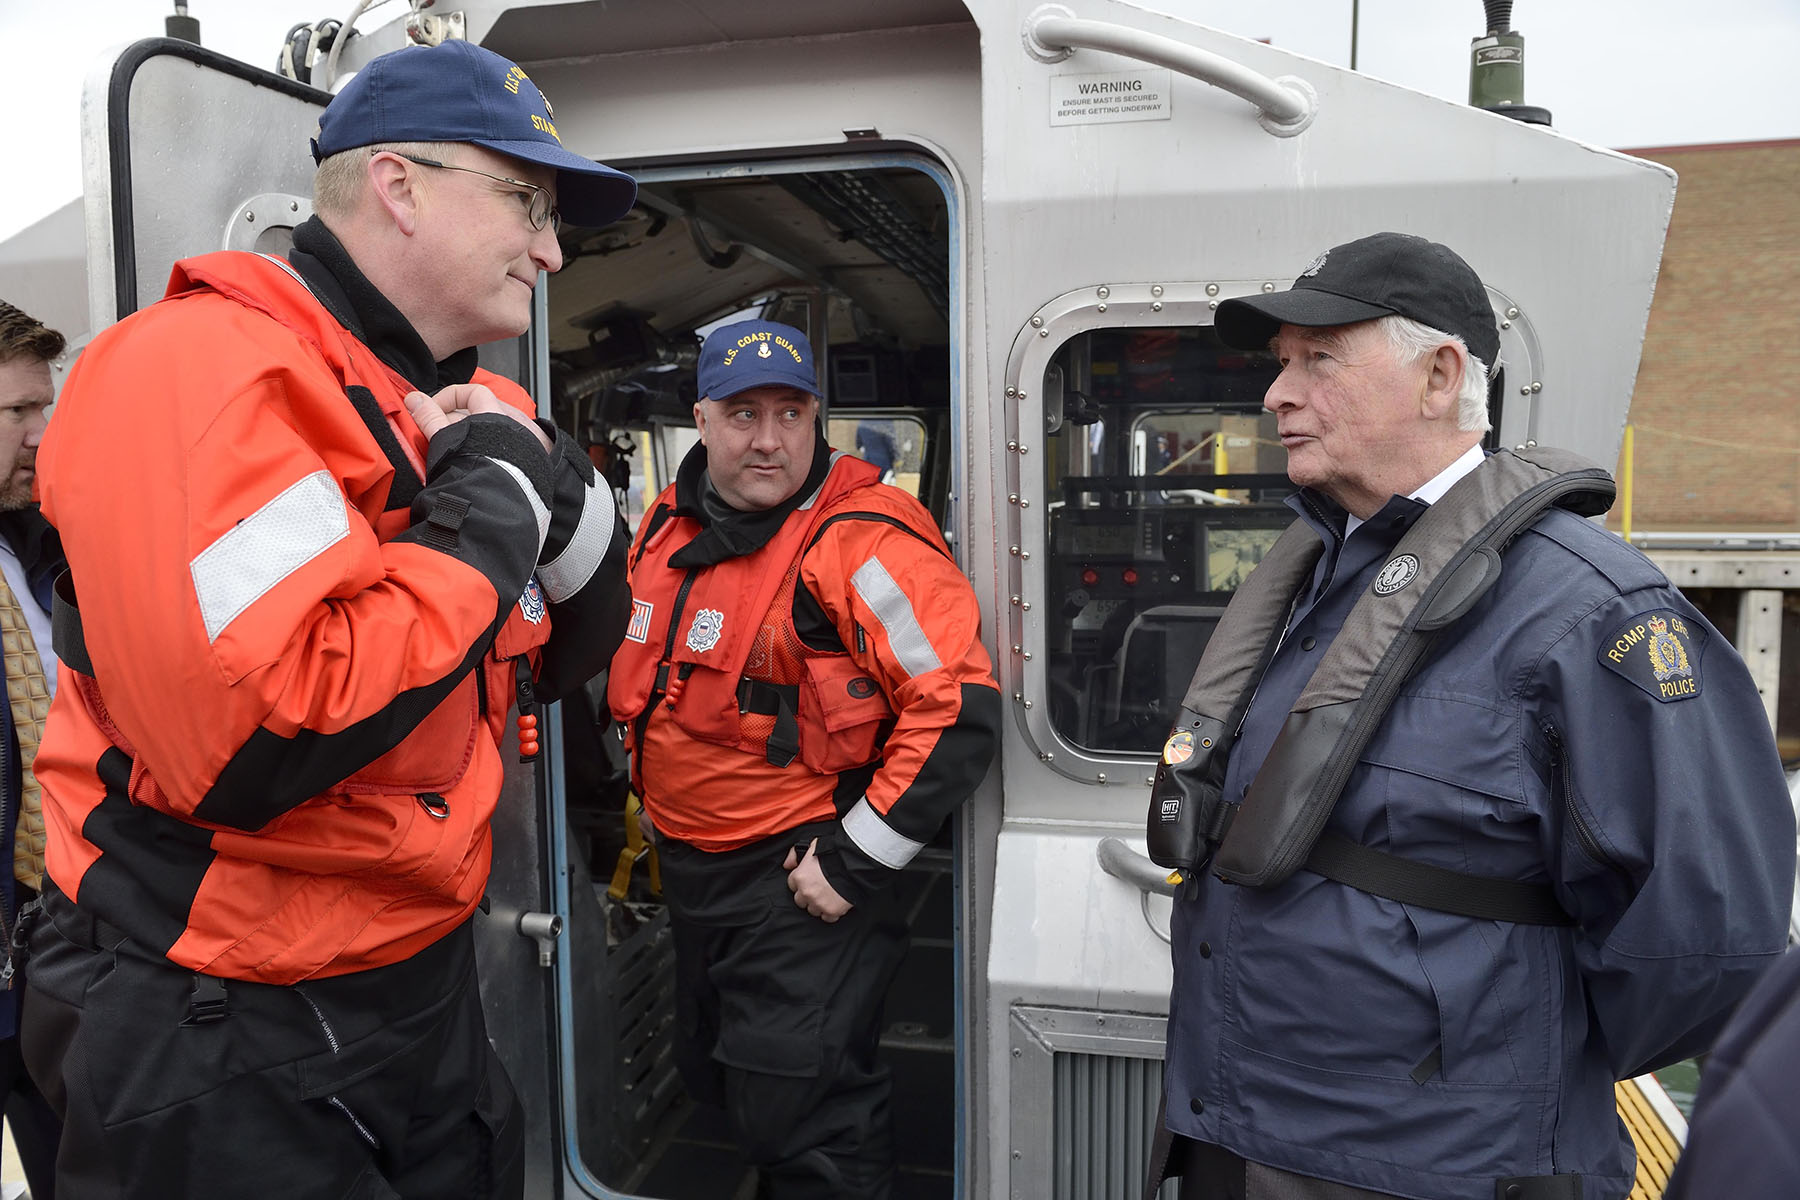 During his visit, the Governor General received a briefing from the U.S. Coast Guard and the RCMP.